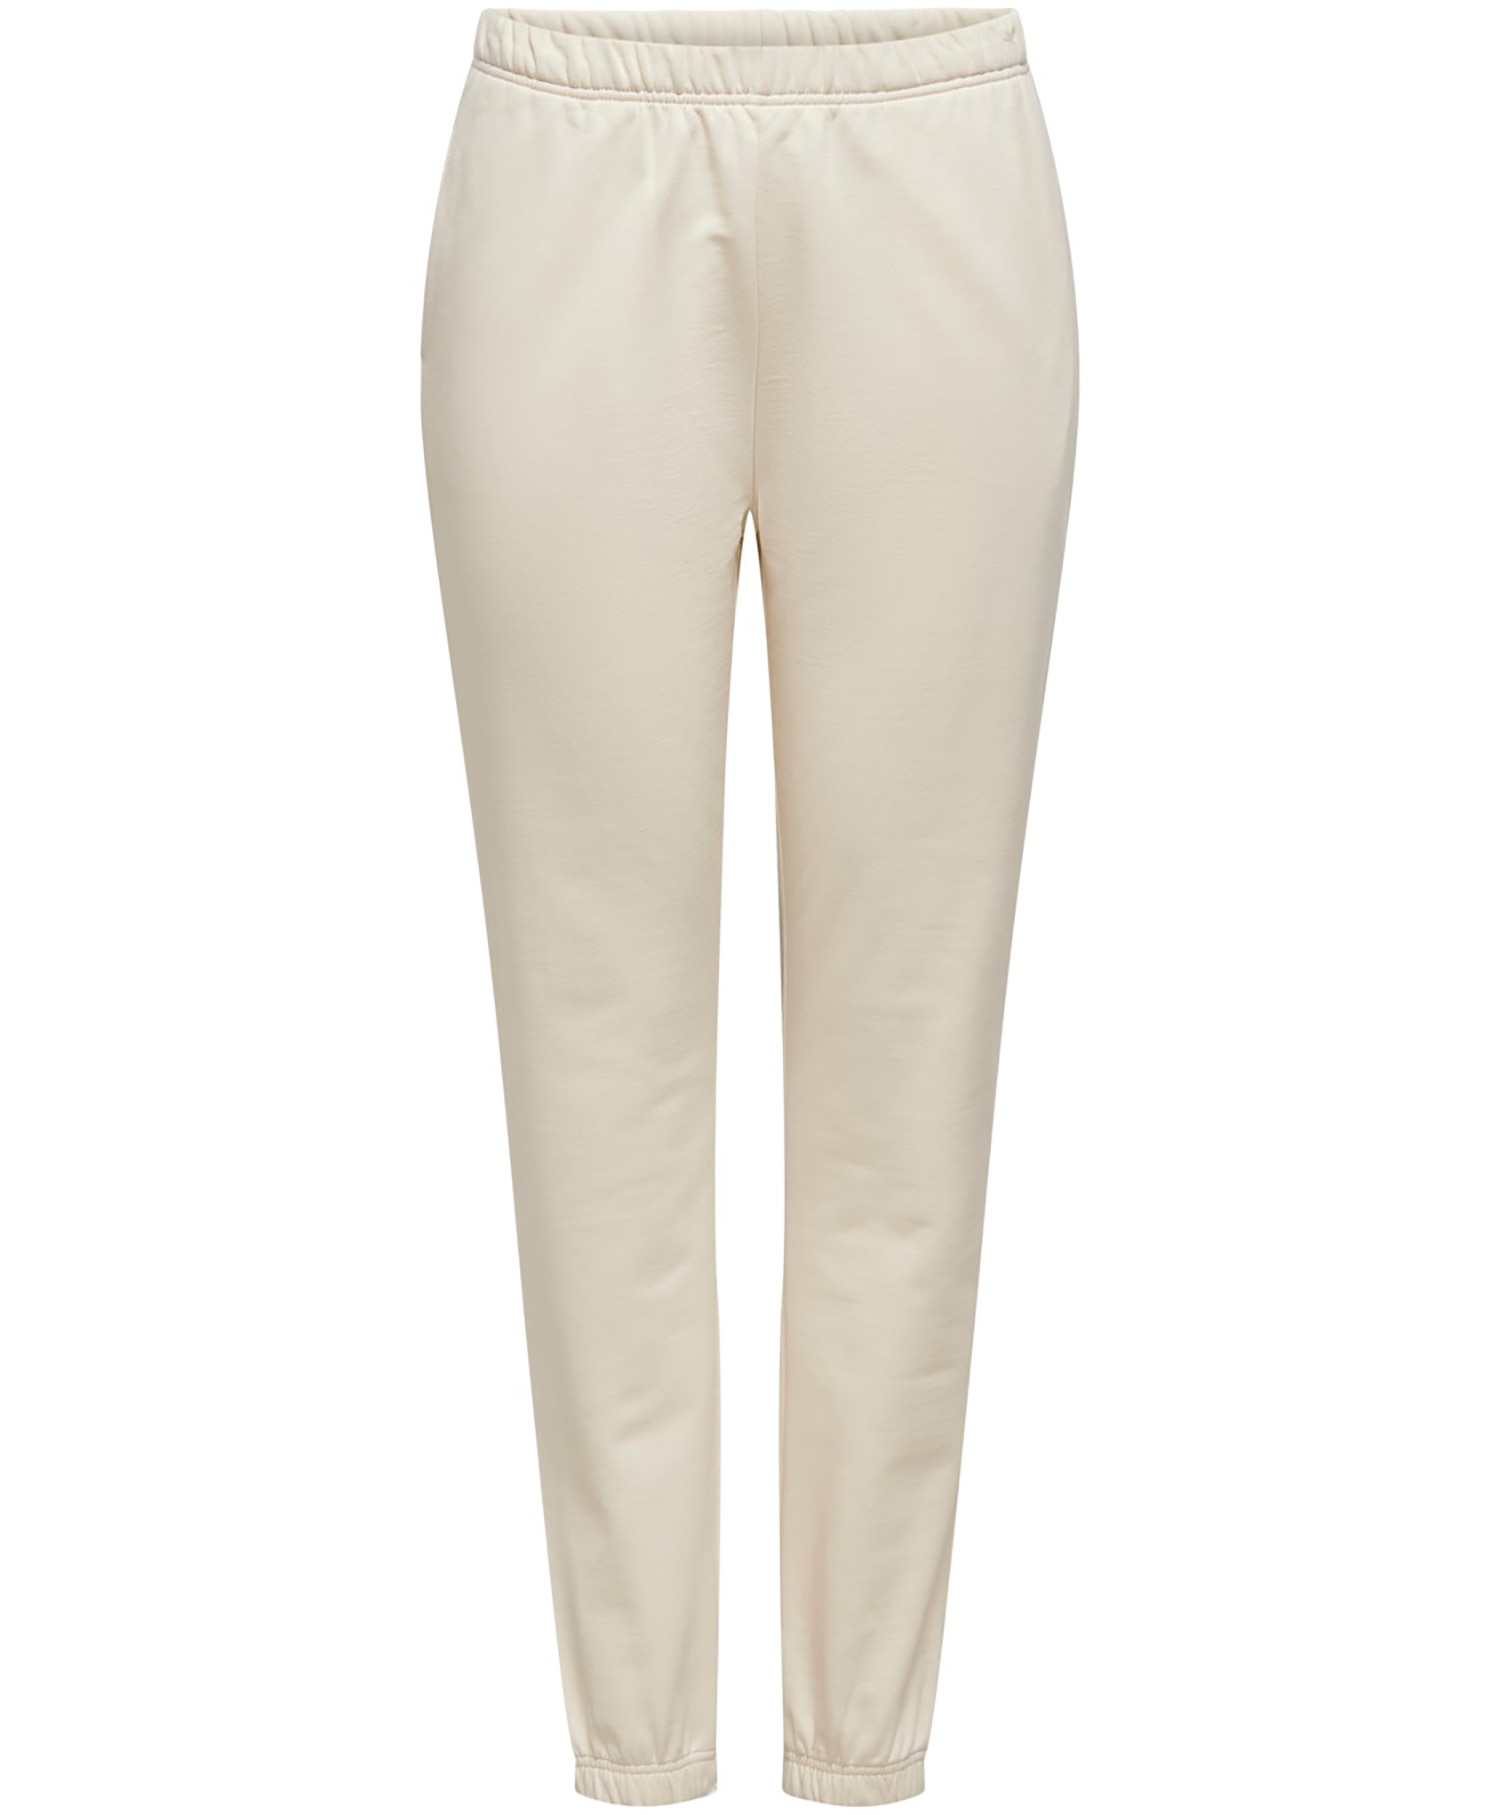 Only Dreamer Pant